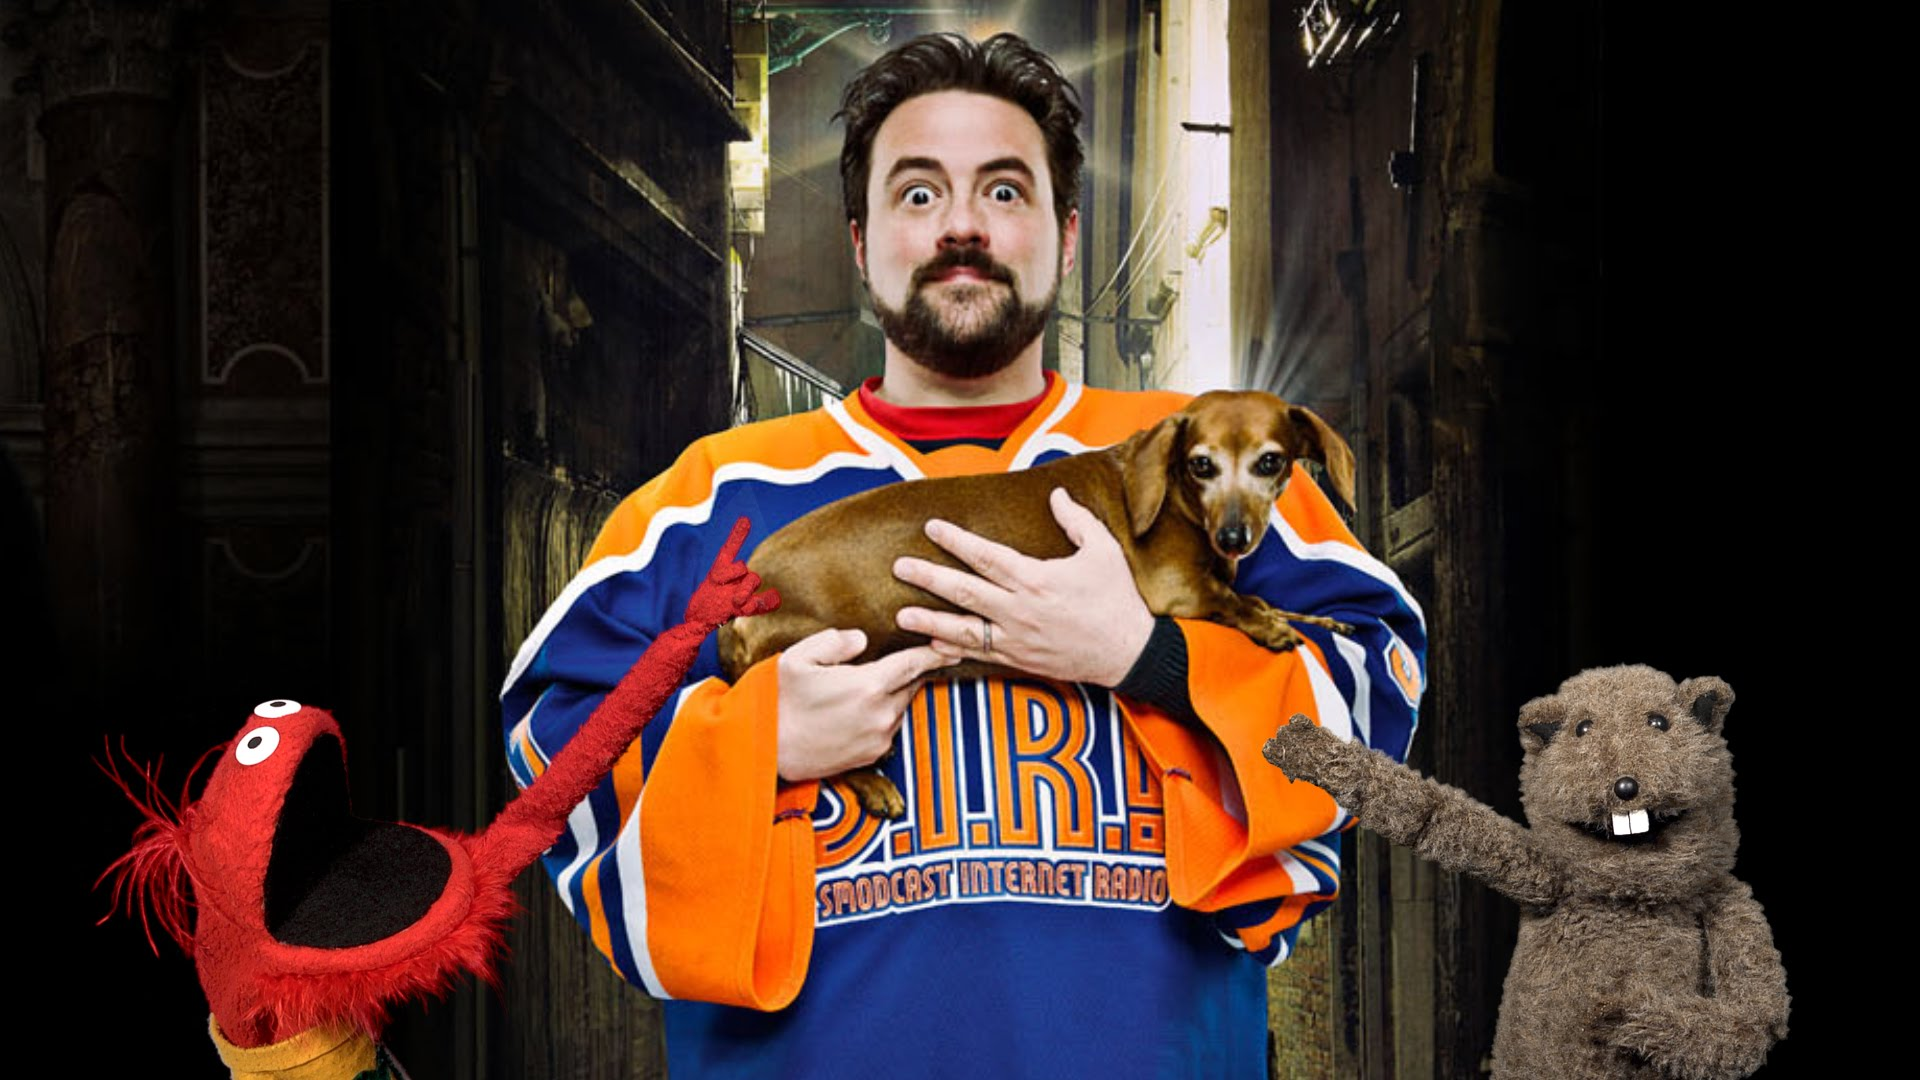 1920x1080 - Kevin Smith Wallpapers 1